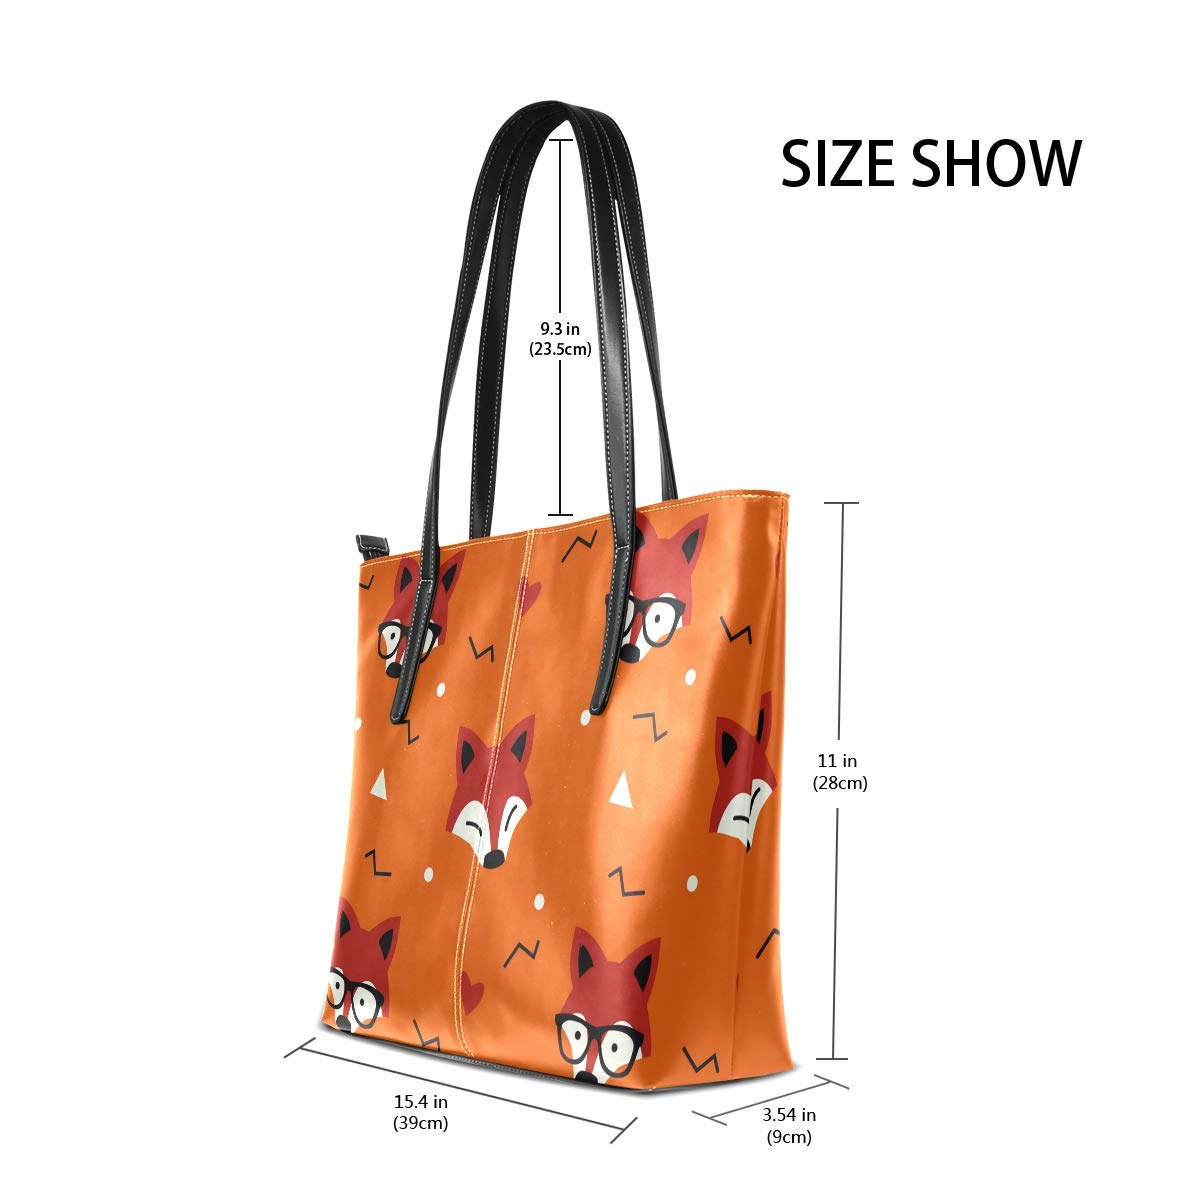 AMONKA , Damen Tote-Tasche Mehrfarbig mehrfarbig Large Large Large B07PT9ZKYX Shopper Hohe Qualität 5d78a3